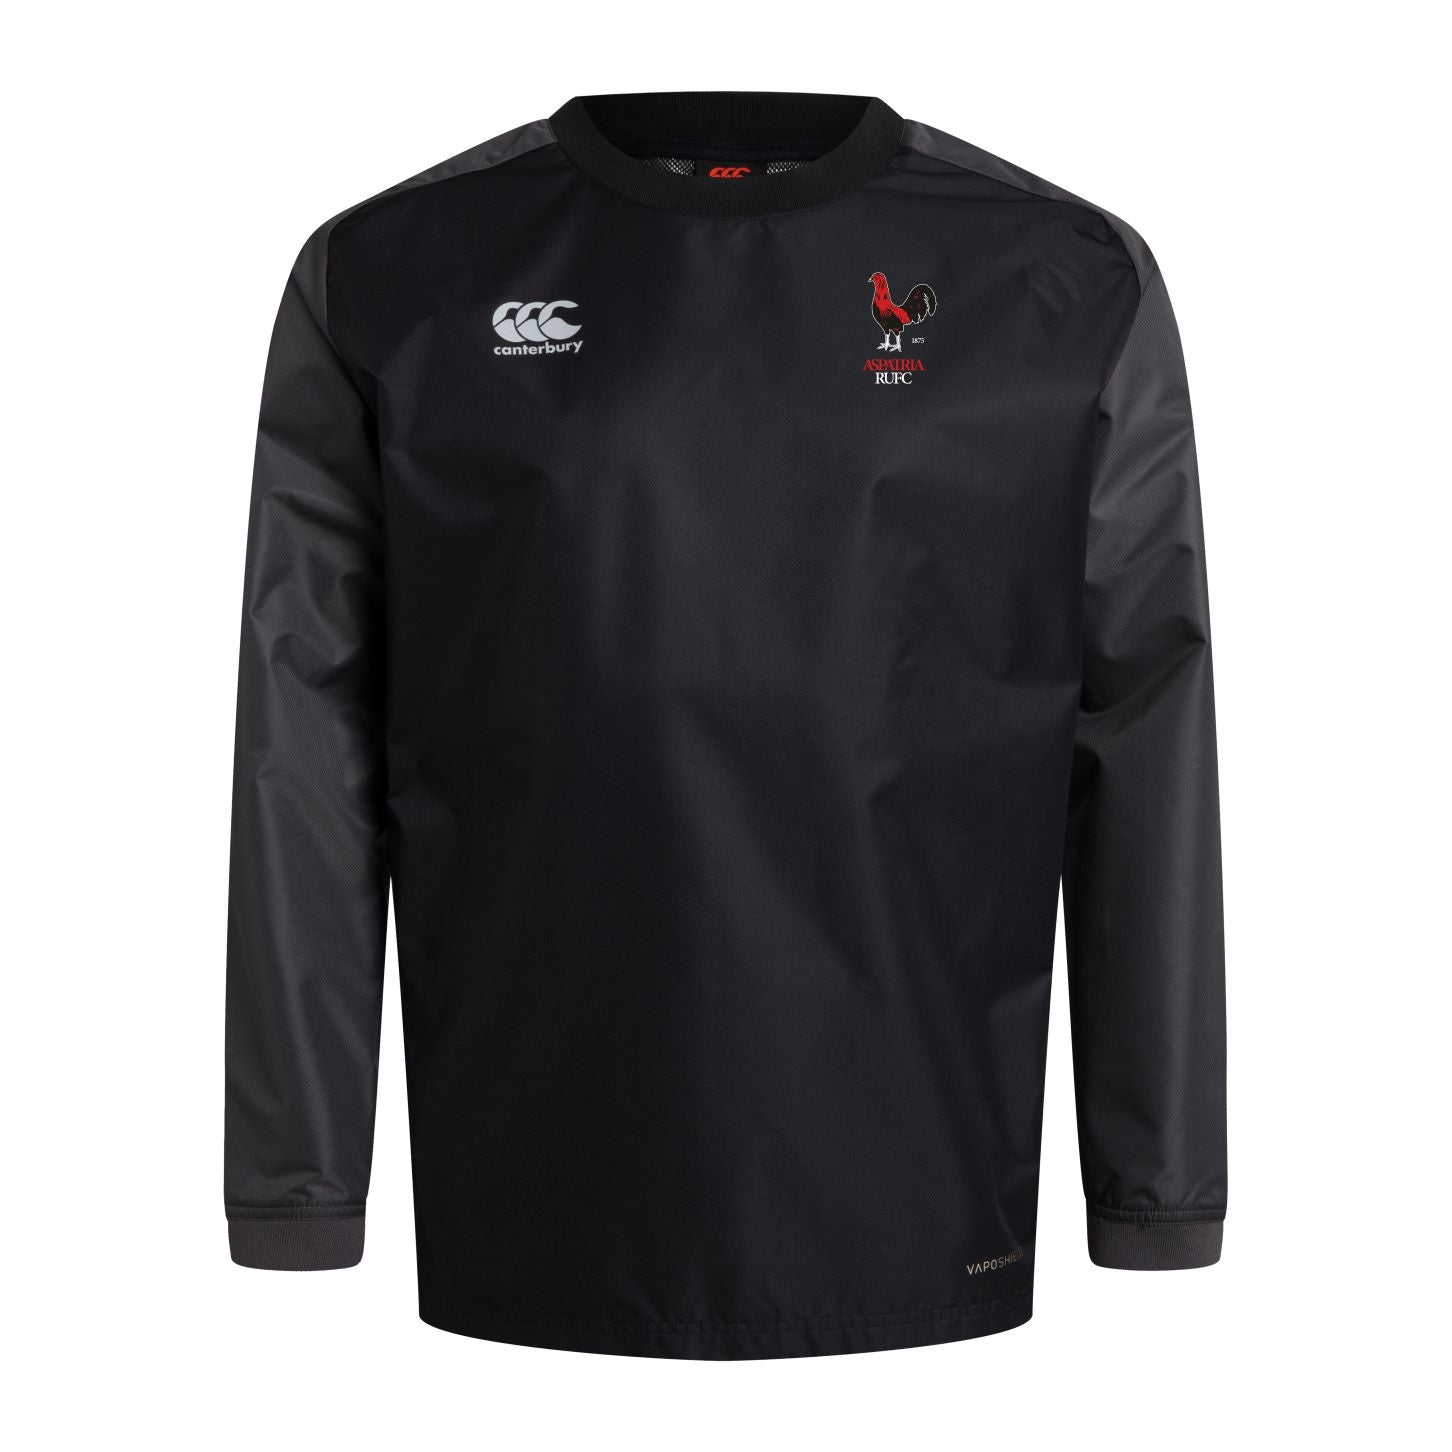 Aspatria RUFC Pro II Vaposhield Wet Top